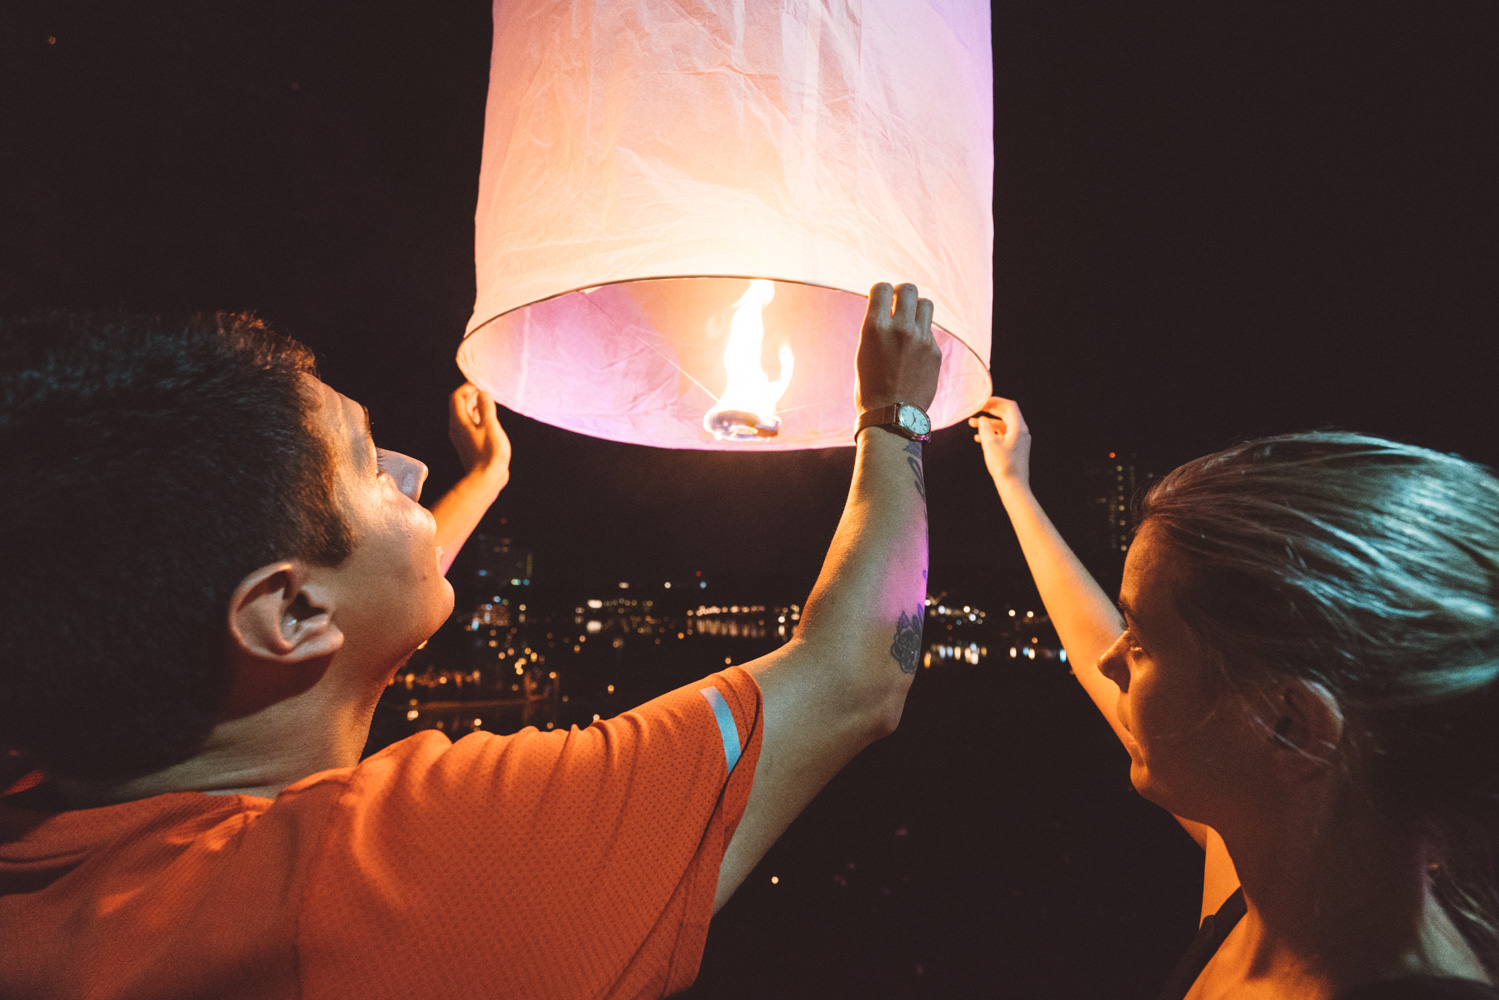 released the lantern